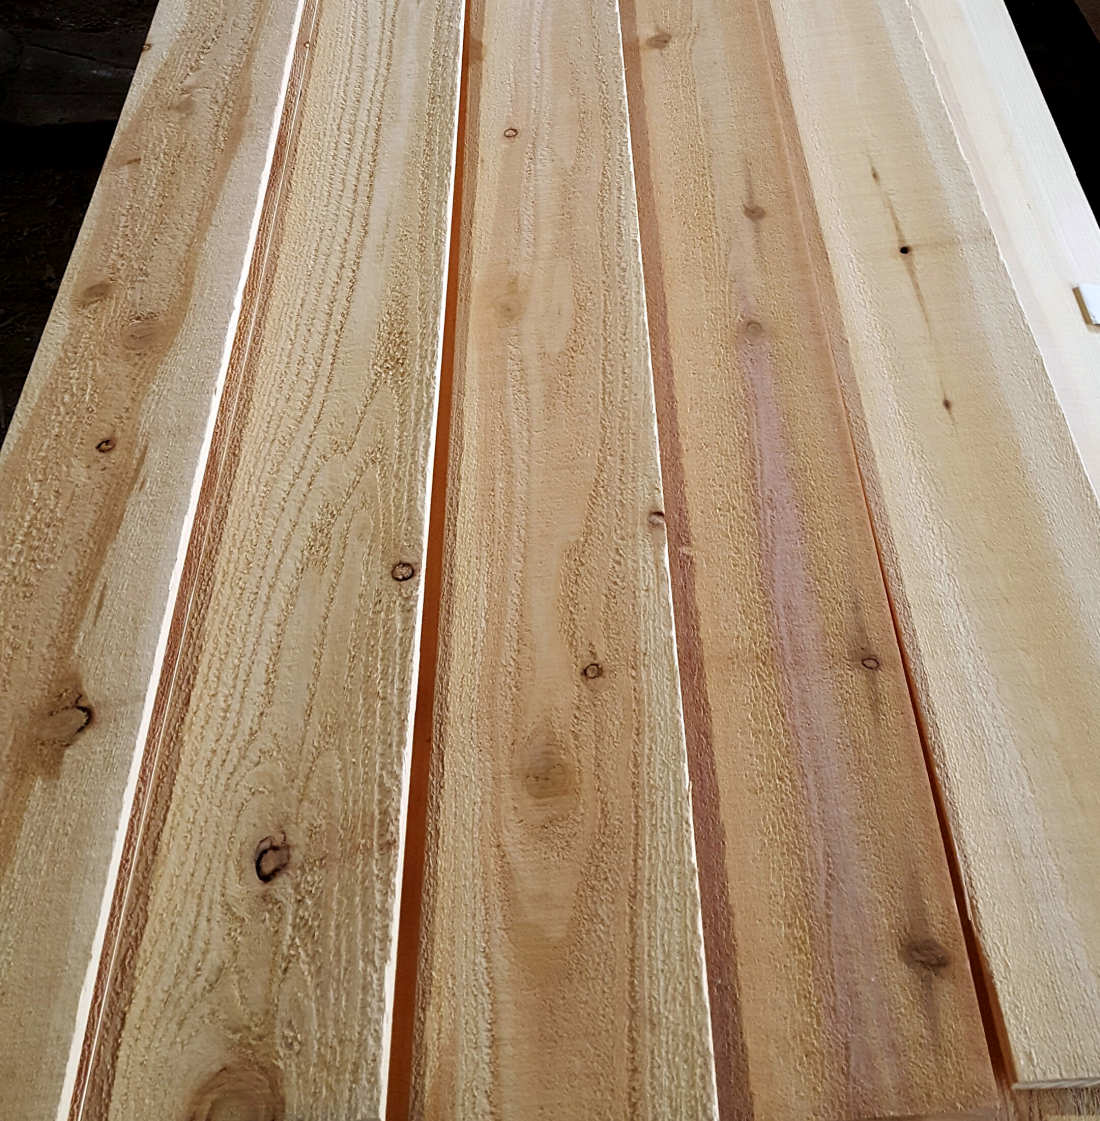 Buffalo Lumber Mill Select Knotty Grade example